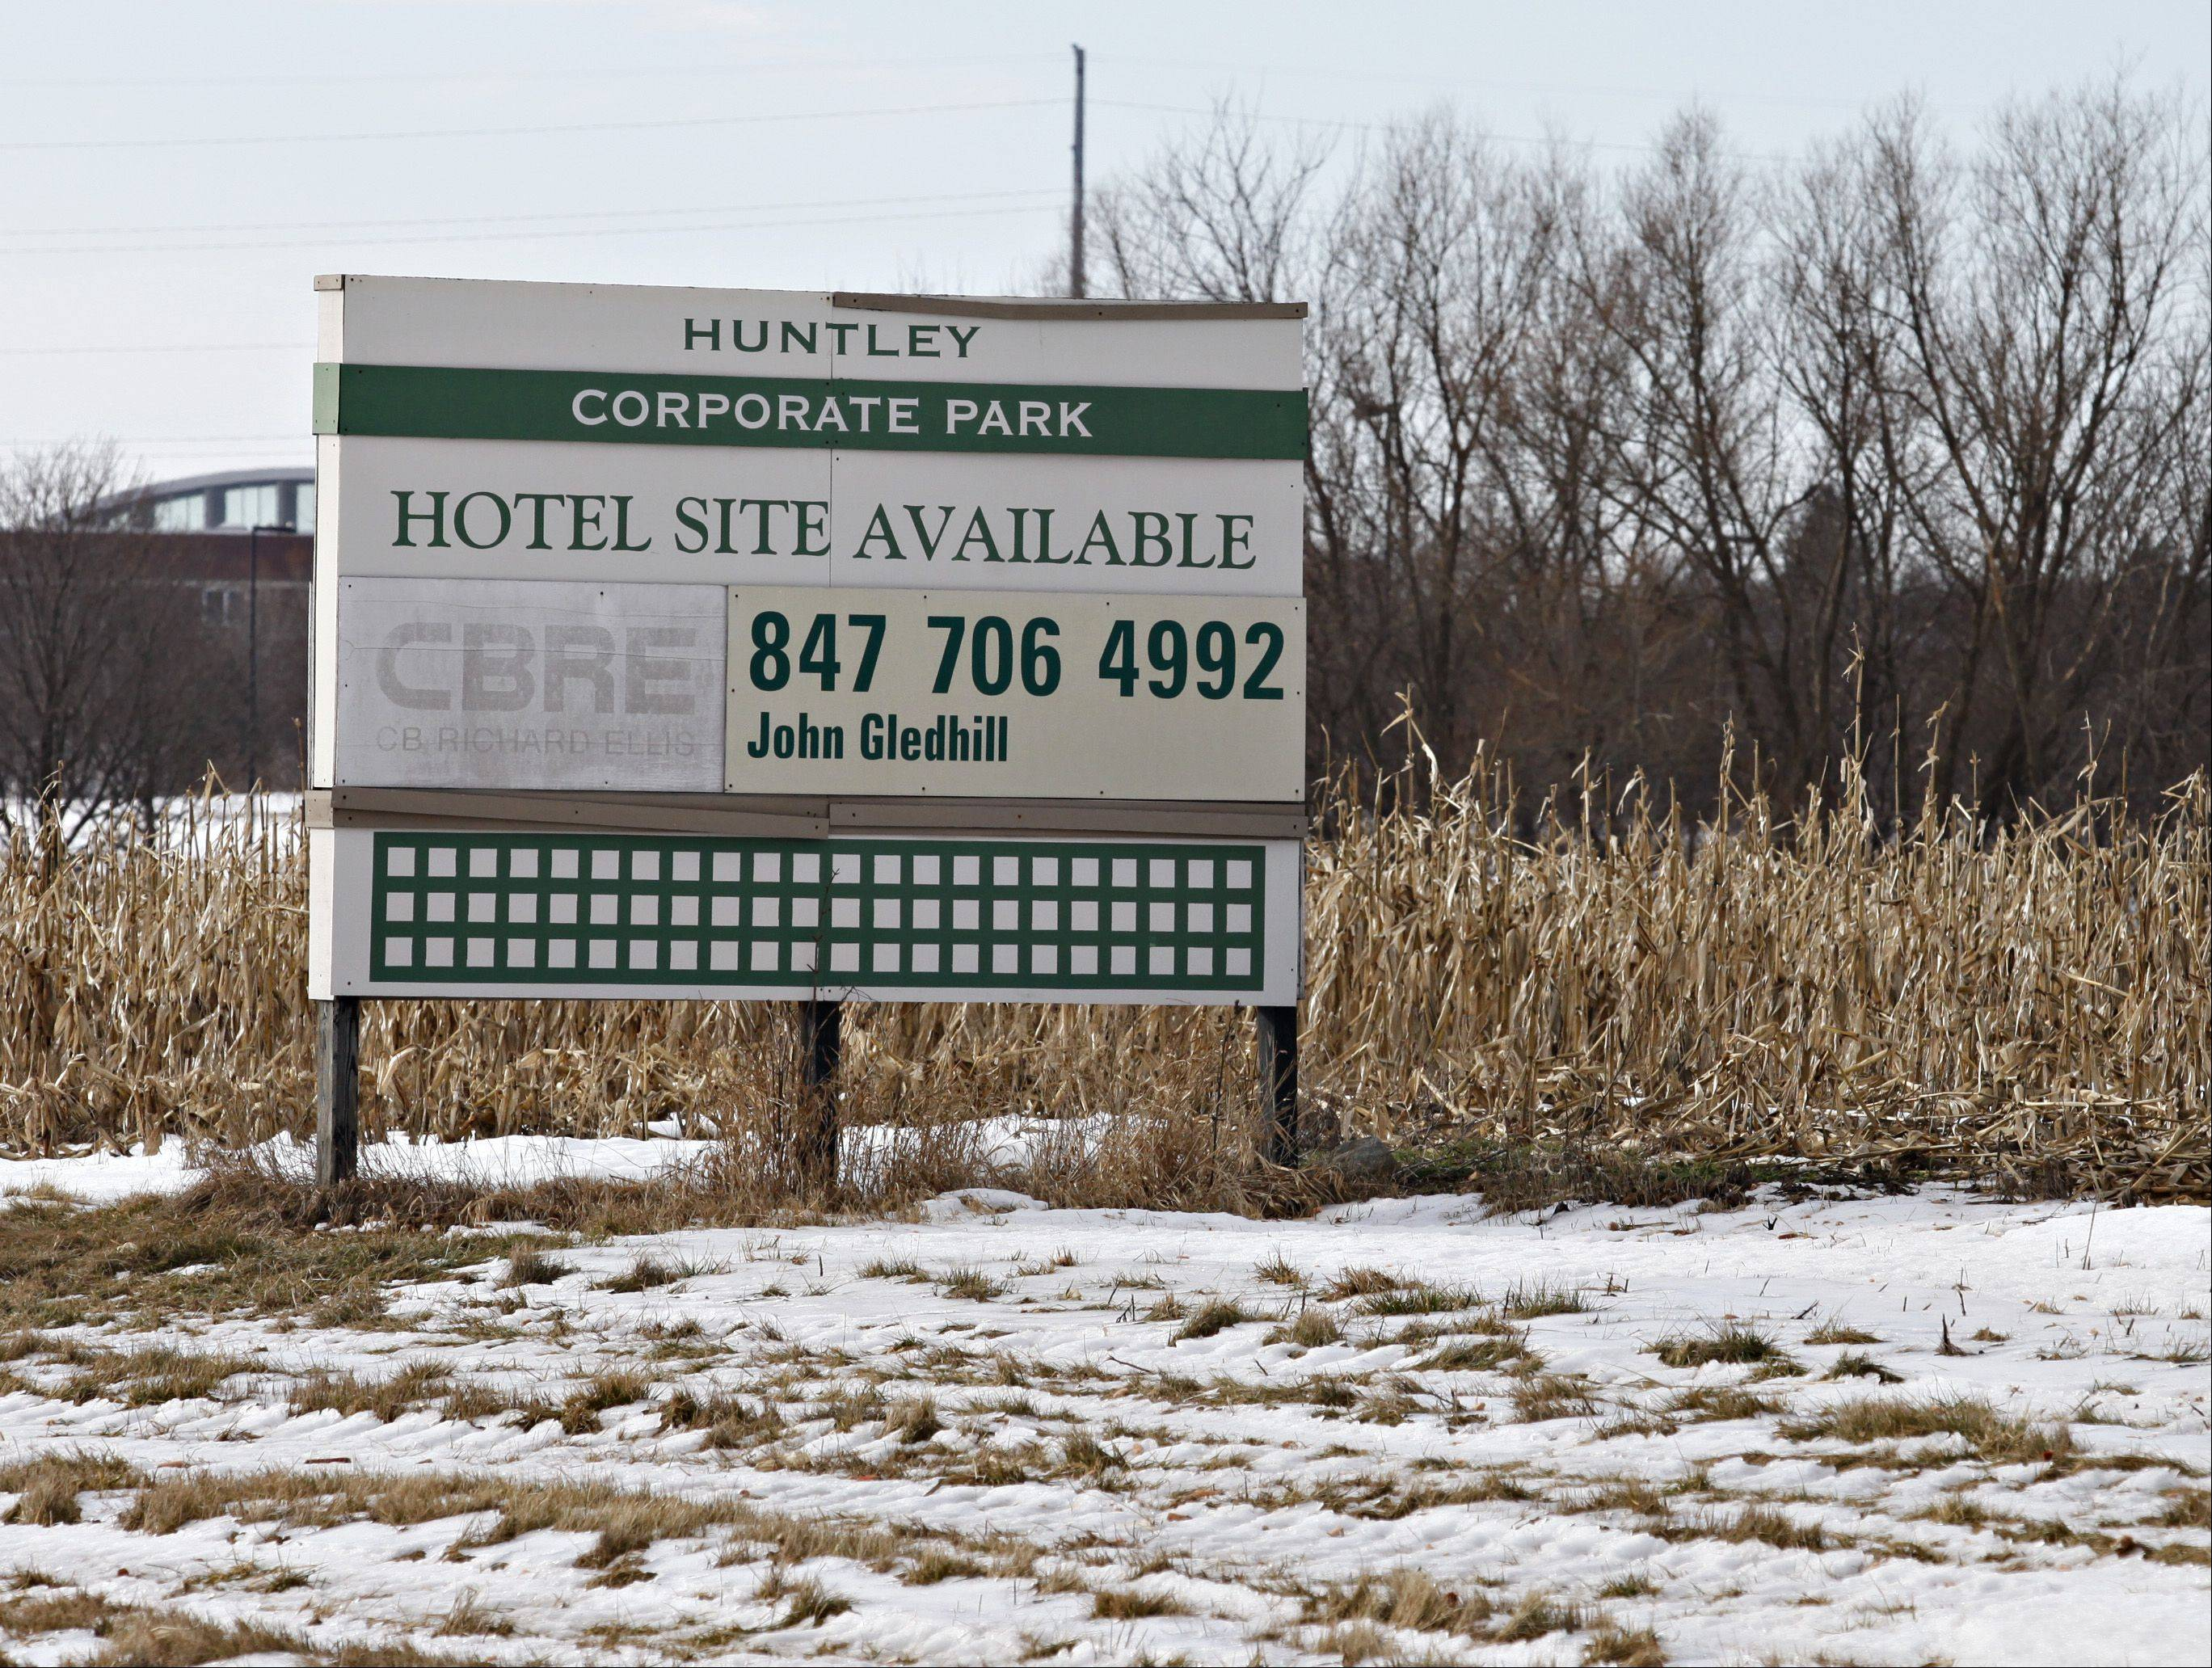 Huntley's business climate is expected to improve now that the new interchange at I-90 and Route 47 is open, possibly filling some of the sites available at the Huntley Corporate Park.